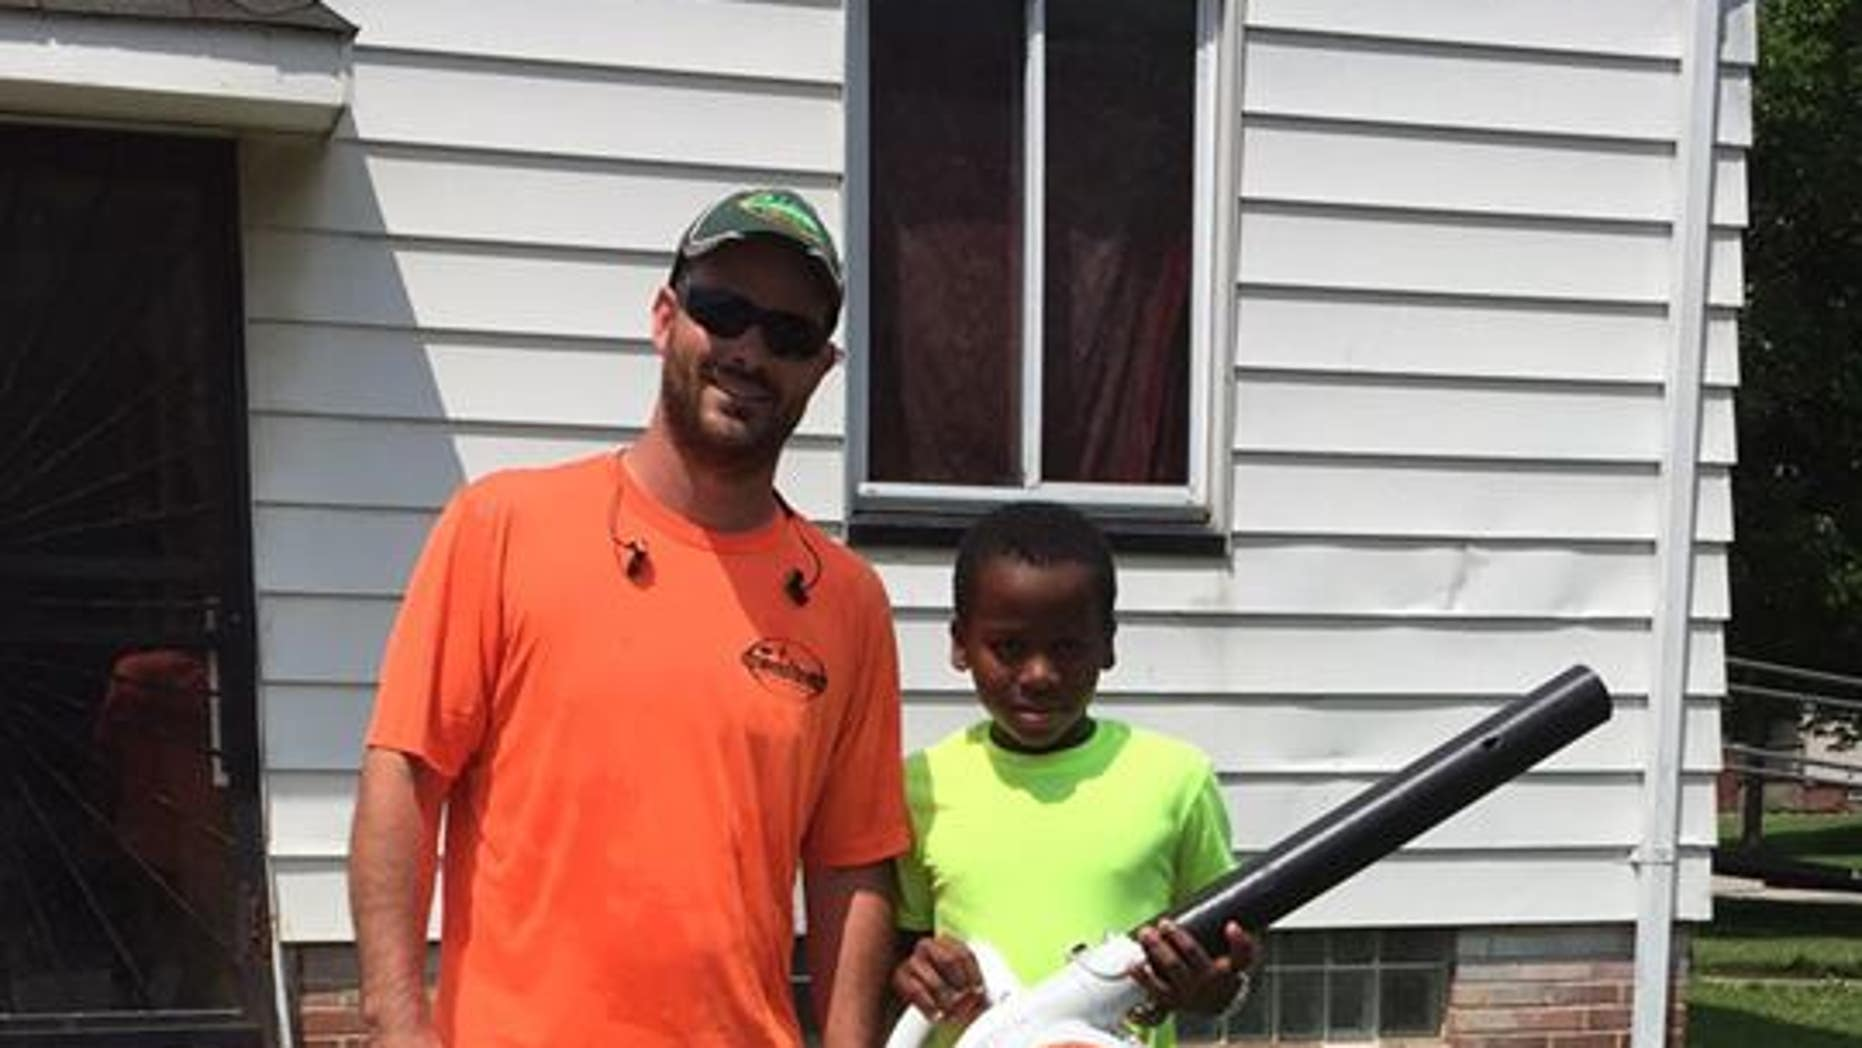 Reggie (right) poses for a photo with a man who gave him a leaf blower.